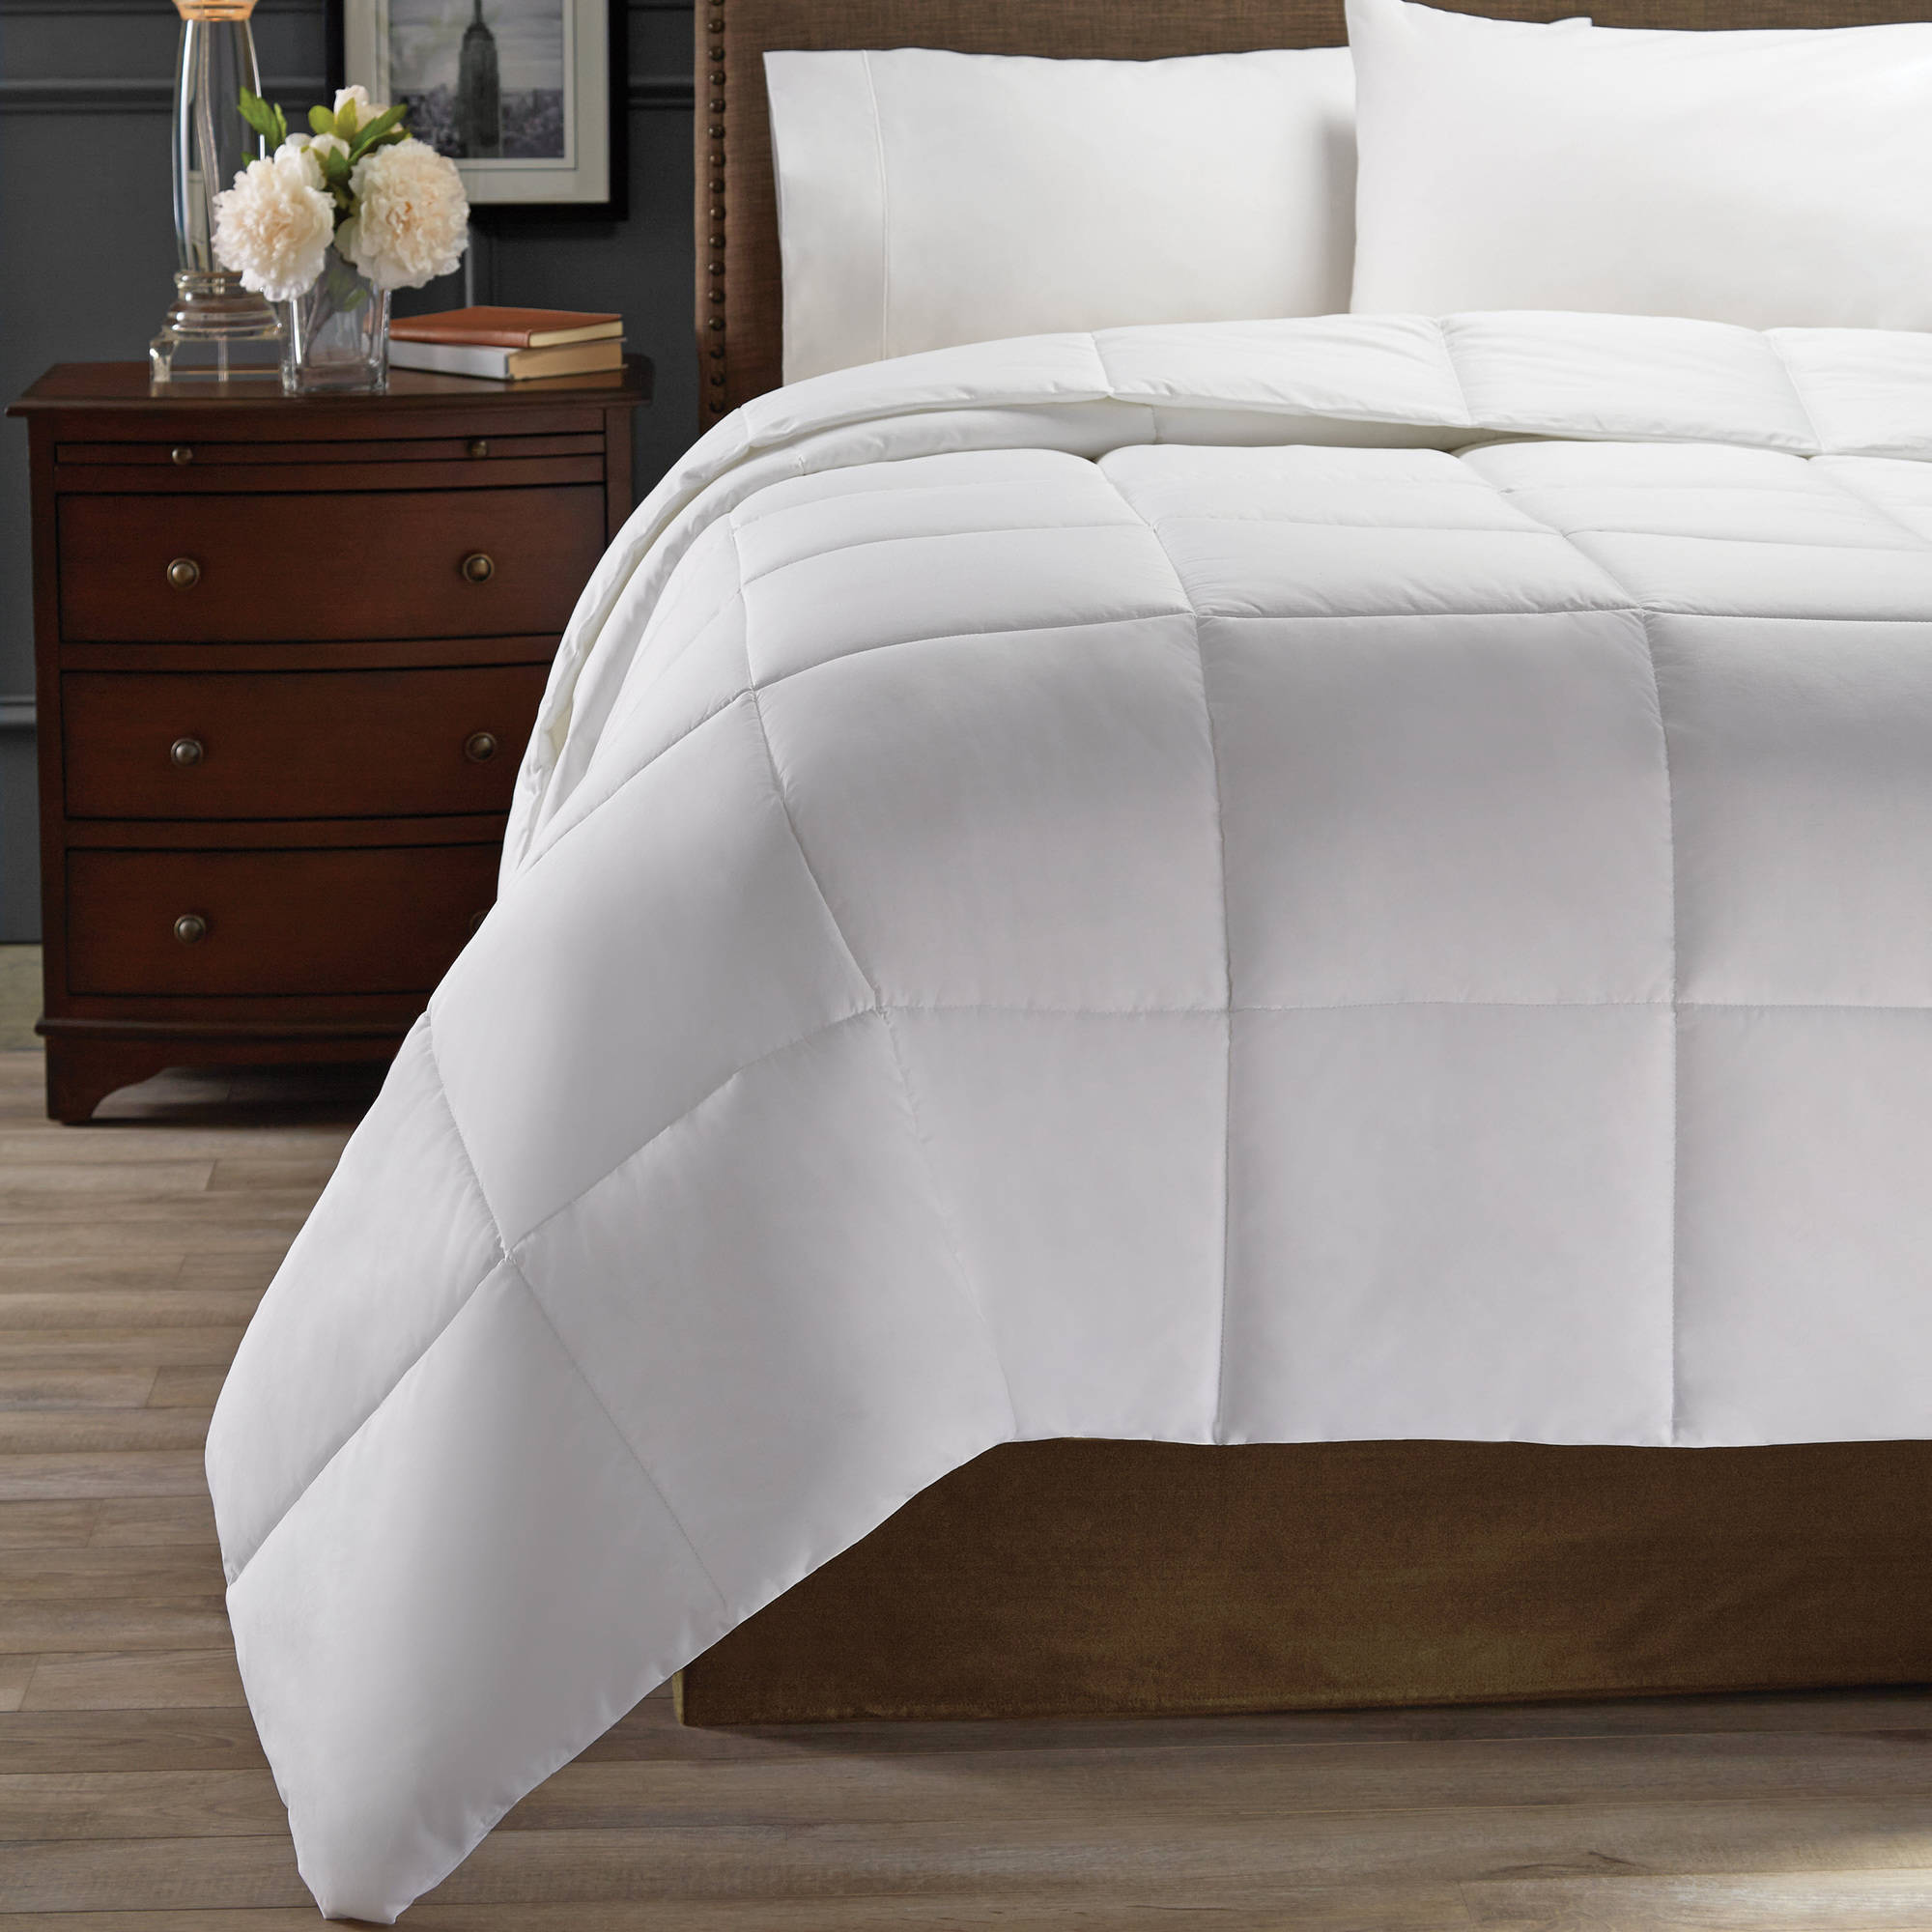 Hotel Style Down Alternative Comforter: Multiple Warmth Levels